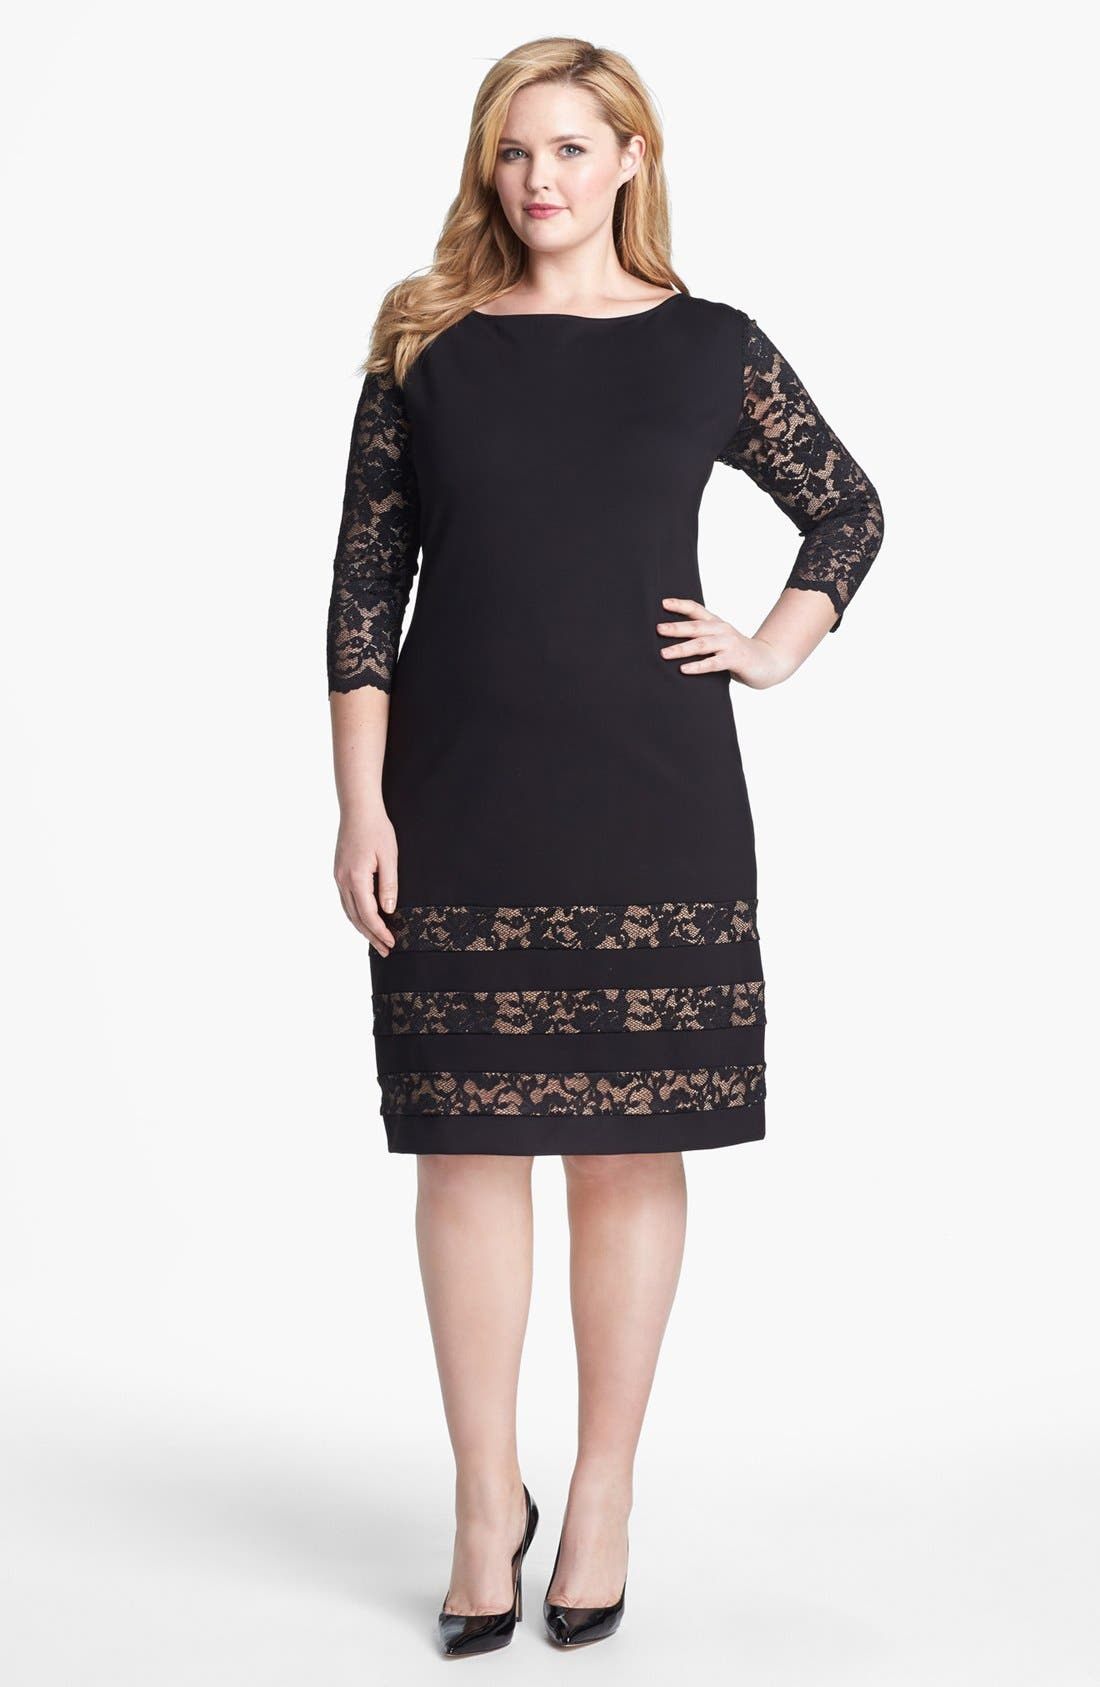 Alternate Image 1 Selected - ABS by Allen Schwartz Lace Detail Sheath Dress (Plus Size)